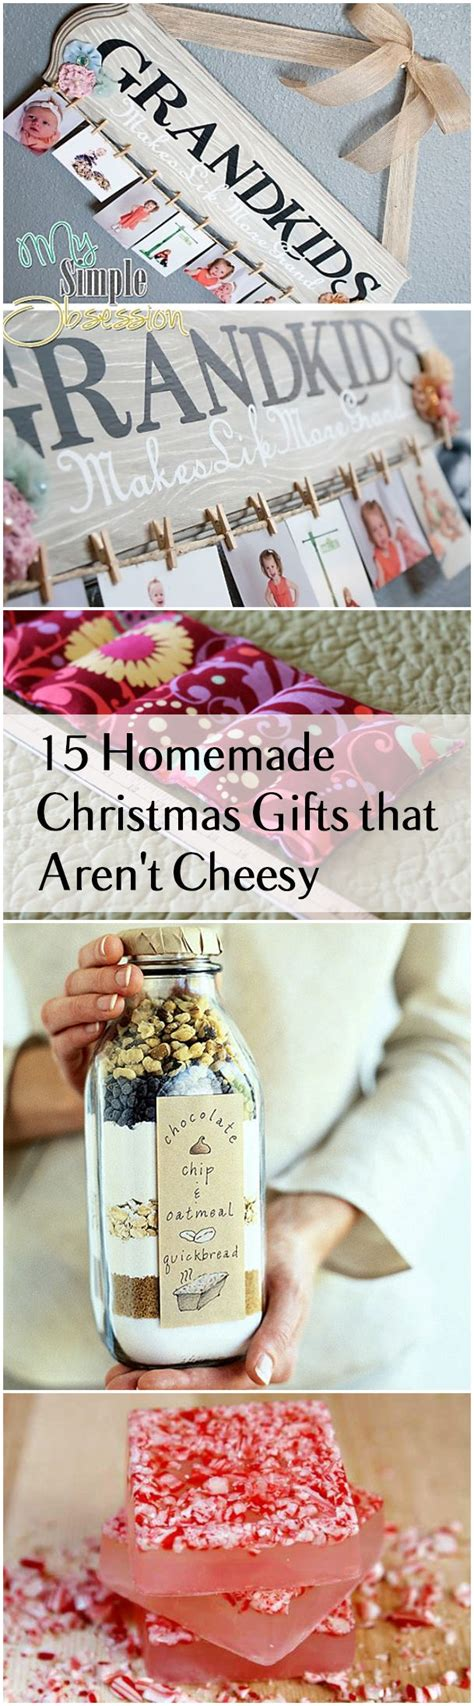 25 best ideas about holiday gifts on pinterest xmas